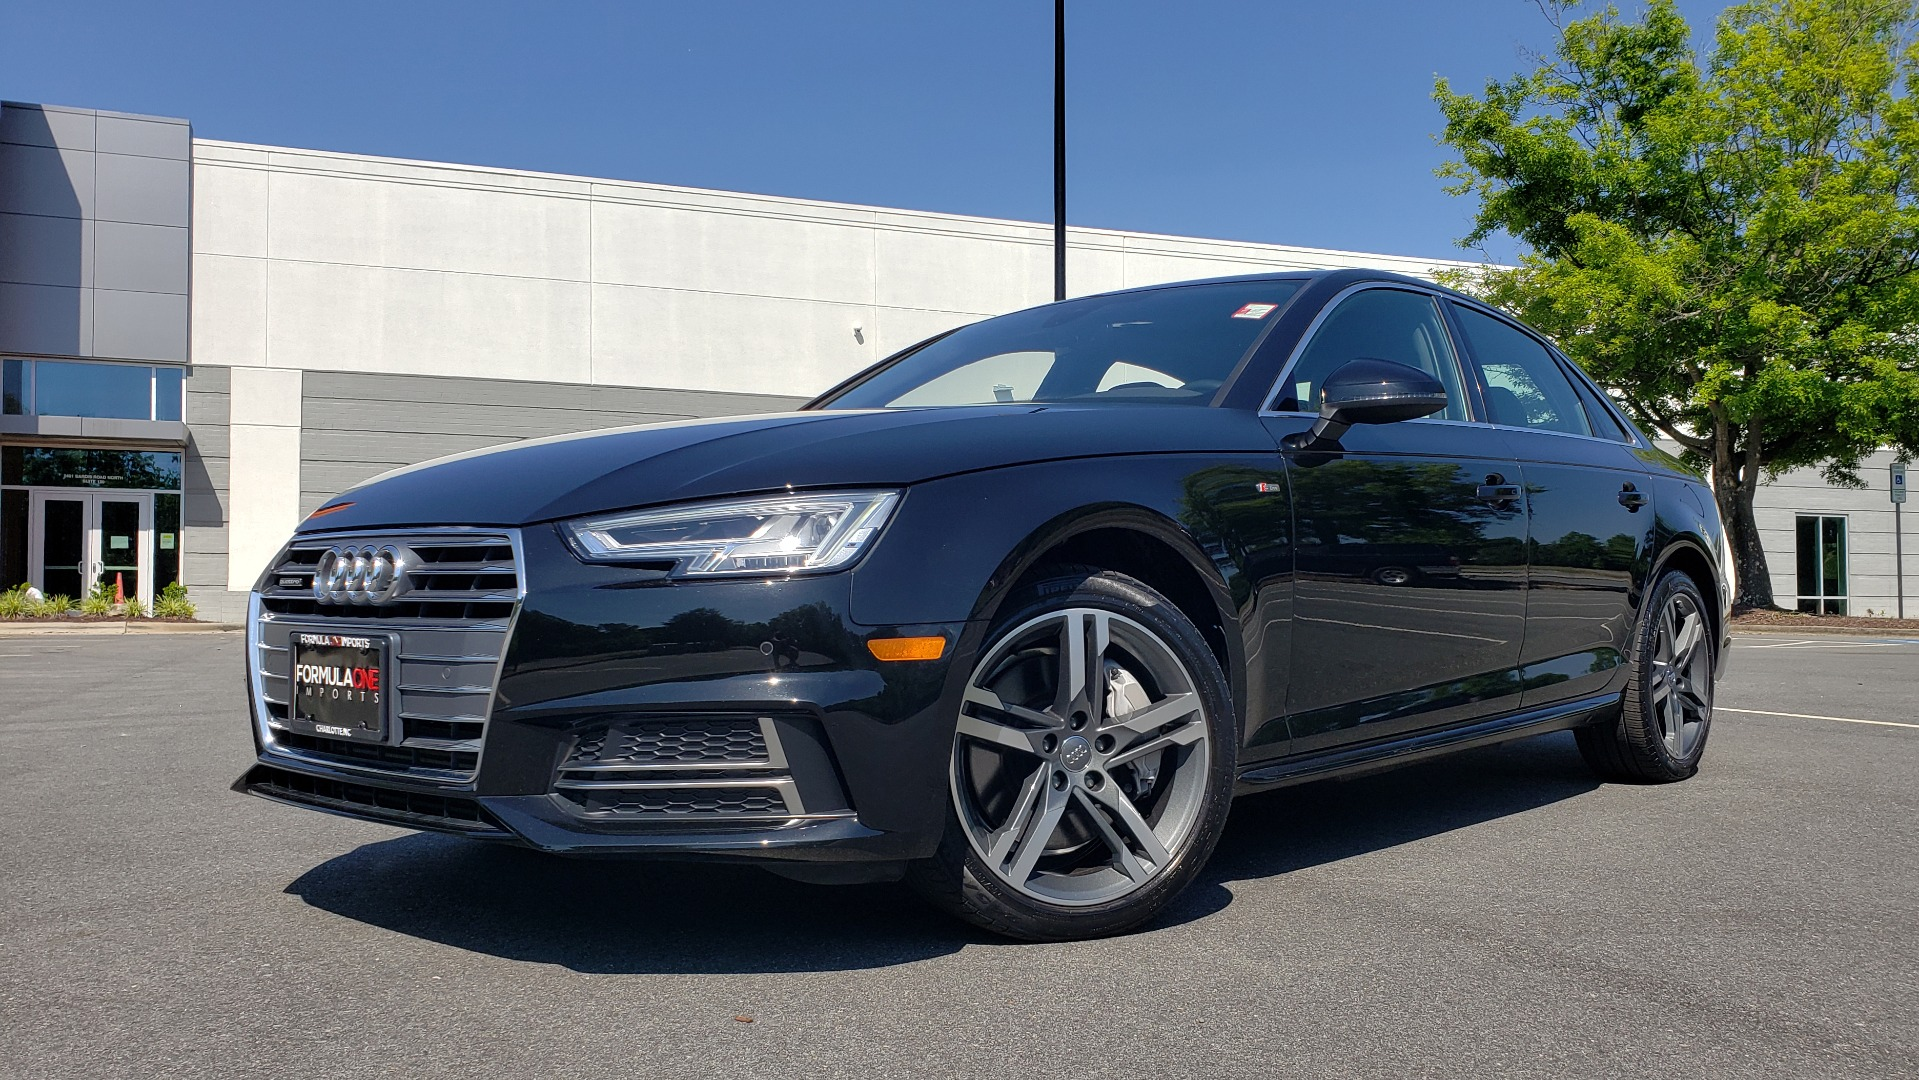 Used 2018 Audi A4 PREMIUM PLUS 2.0T / NAV / SUNROOF / B&O SND / CLD WTHR / REARVIEW for sale $30,695 at Formula Imports in Charlotte NC 28227 89